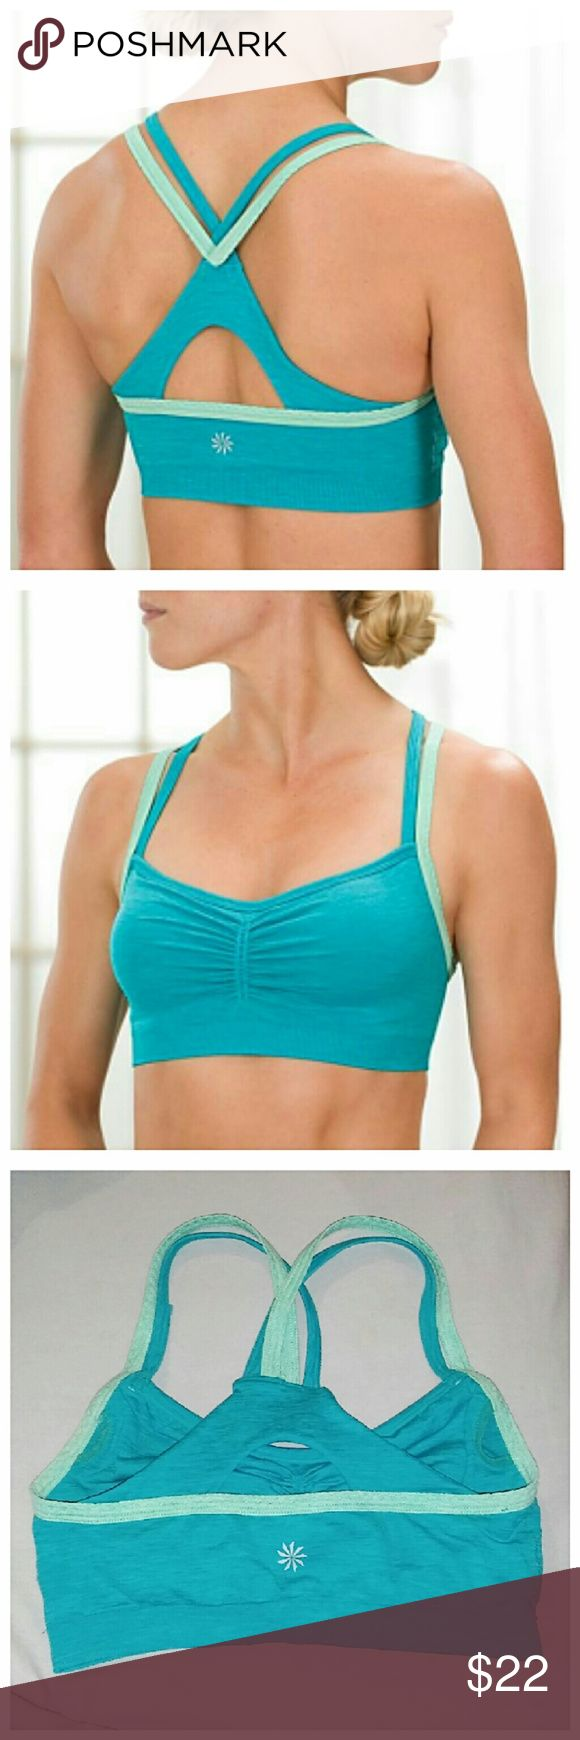 "Strappy Athleta Sports Bra Bold teal against baby blue makes this bra really pop. Alone or layered, it willl be the star of any outfit. Tho it does not come with cups, there is an opening for them. Band stretches from 22""- 28"". Athleta Intimates & Sleepwear Bras"